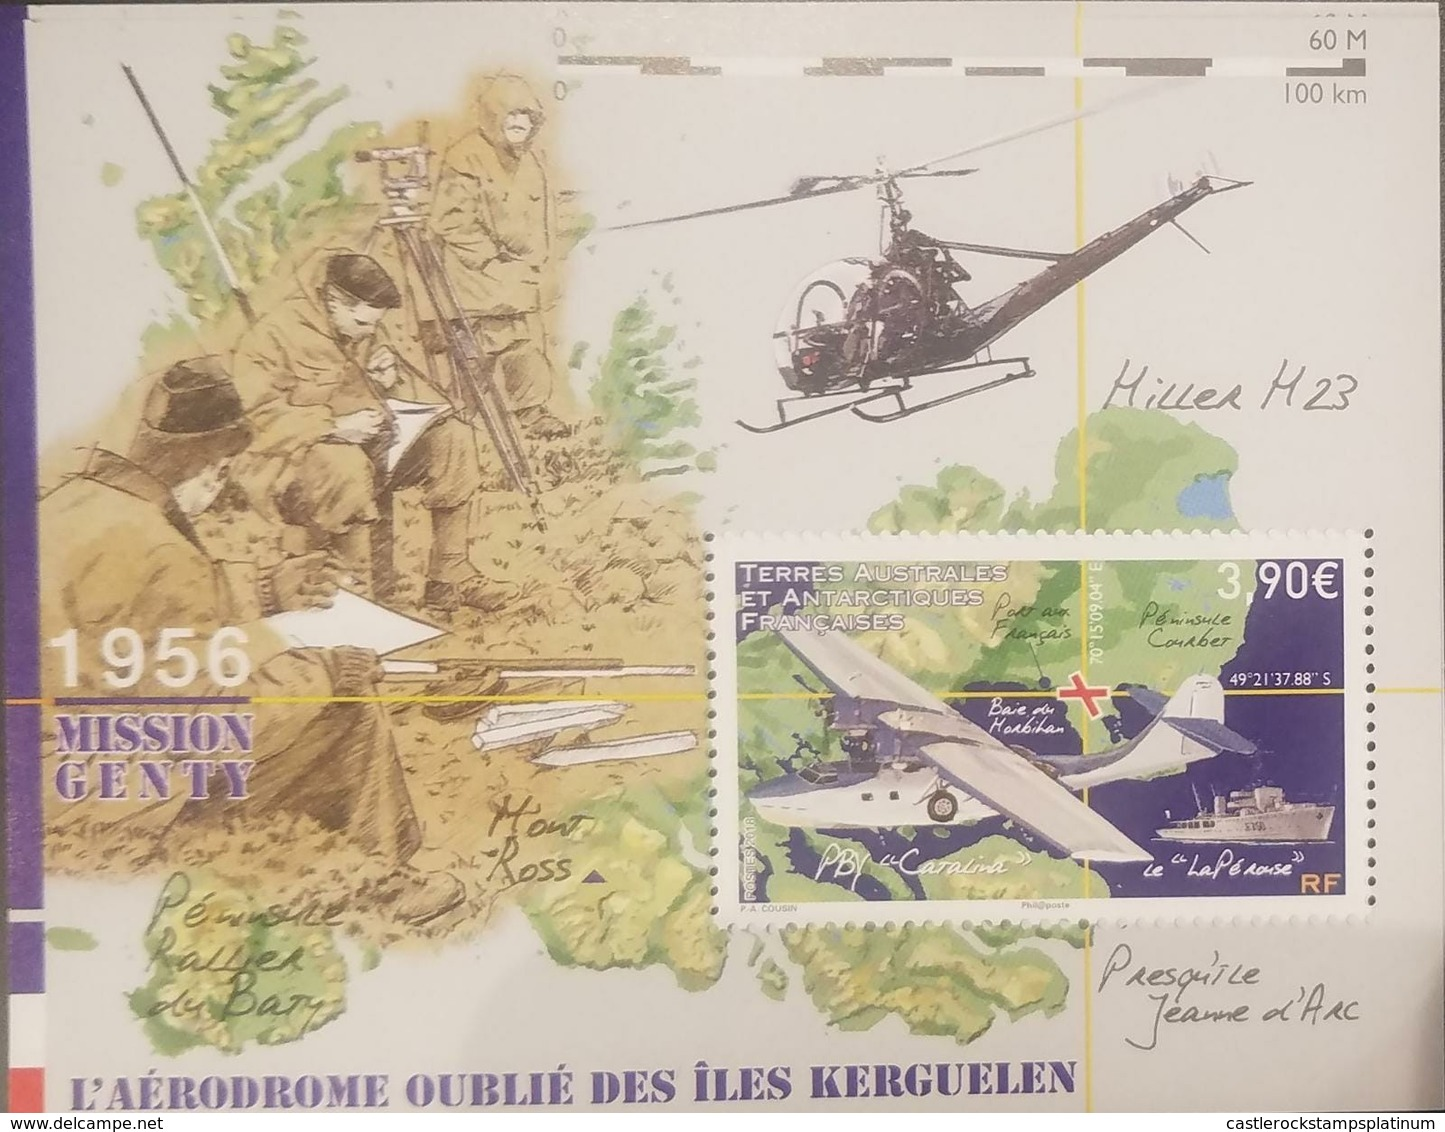 RL) 2018 FRENCH SOUTHERN AND ANTARCTIC LANDS, TAAF, MISSION GENTY, MAP, THE FORGOTTEN AERODROMES OF LLES KERGUELEN - French Southern And Antarctic Territories (TAAF)